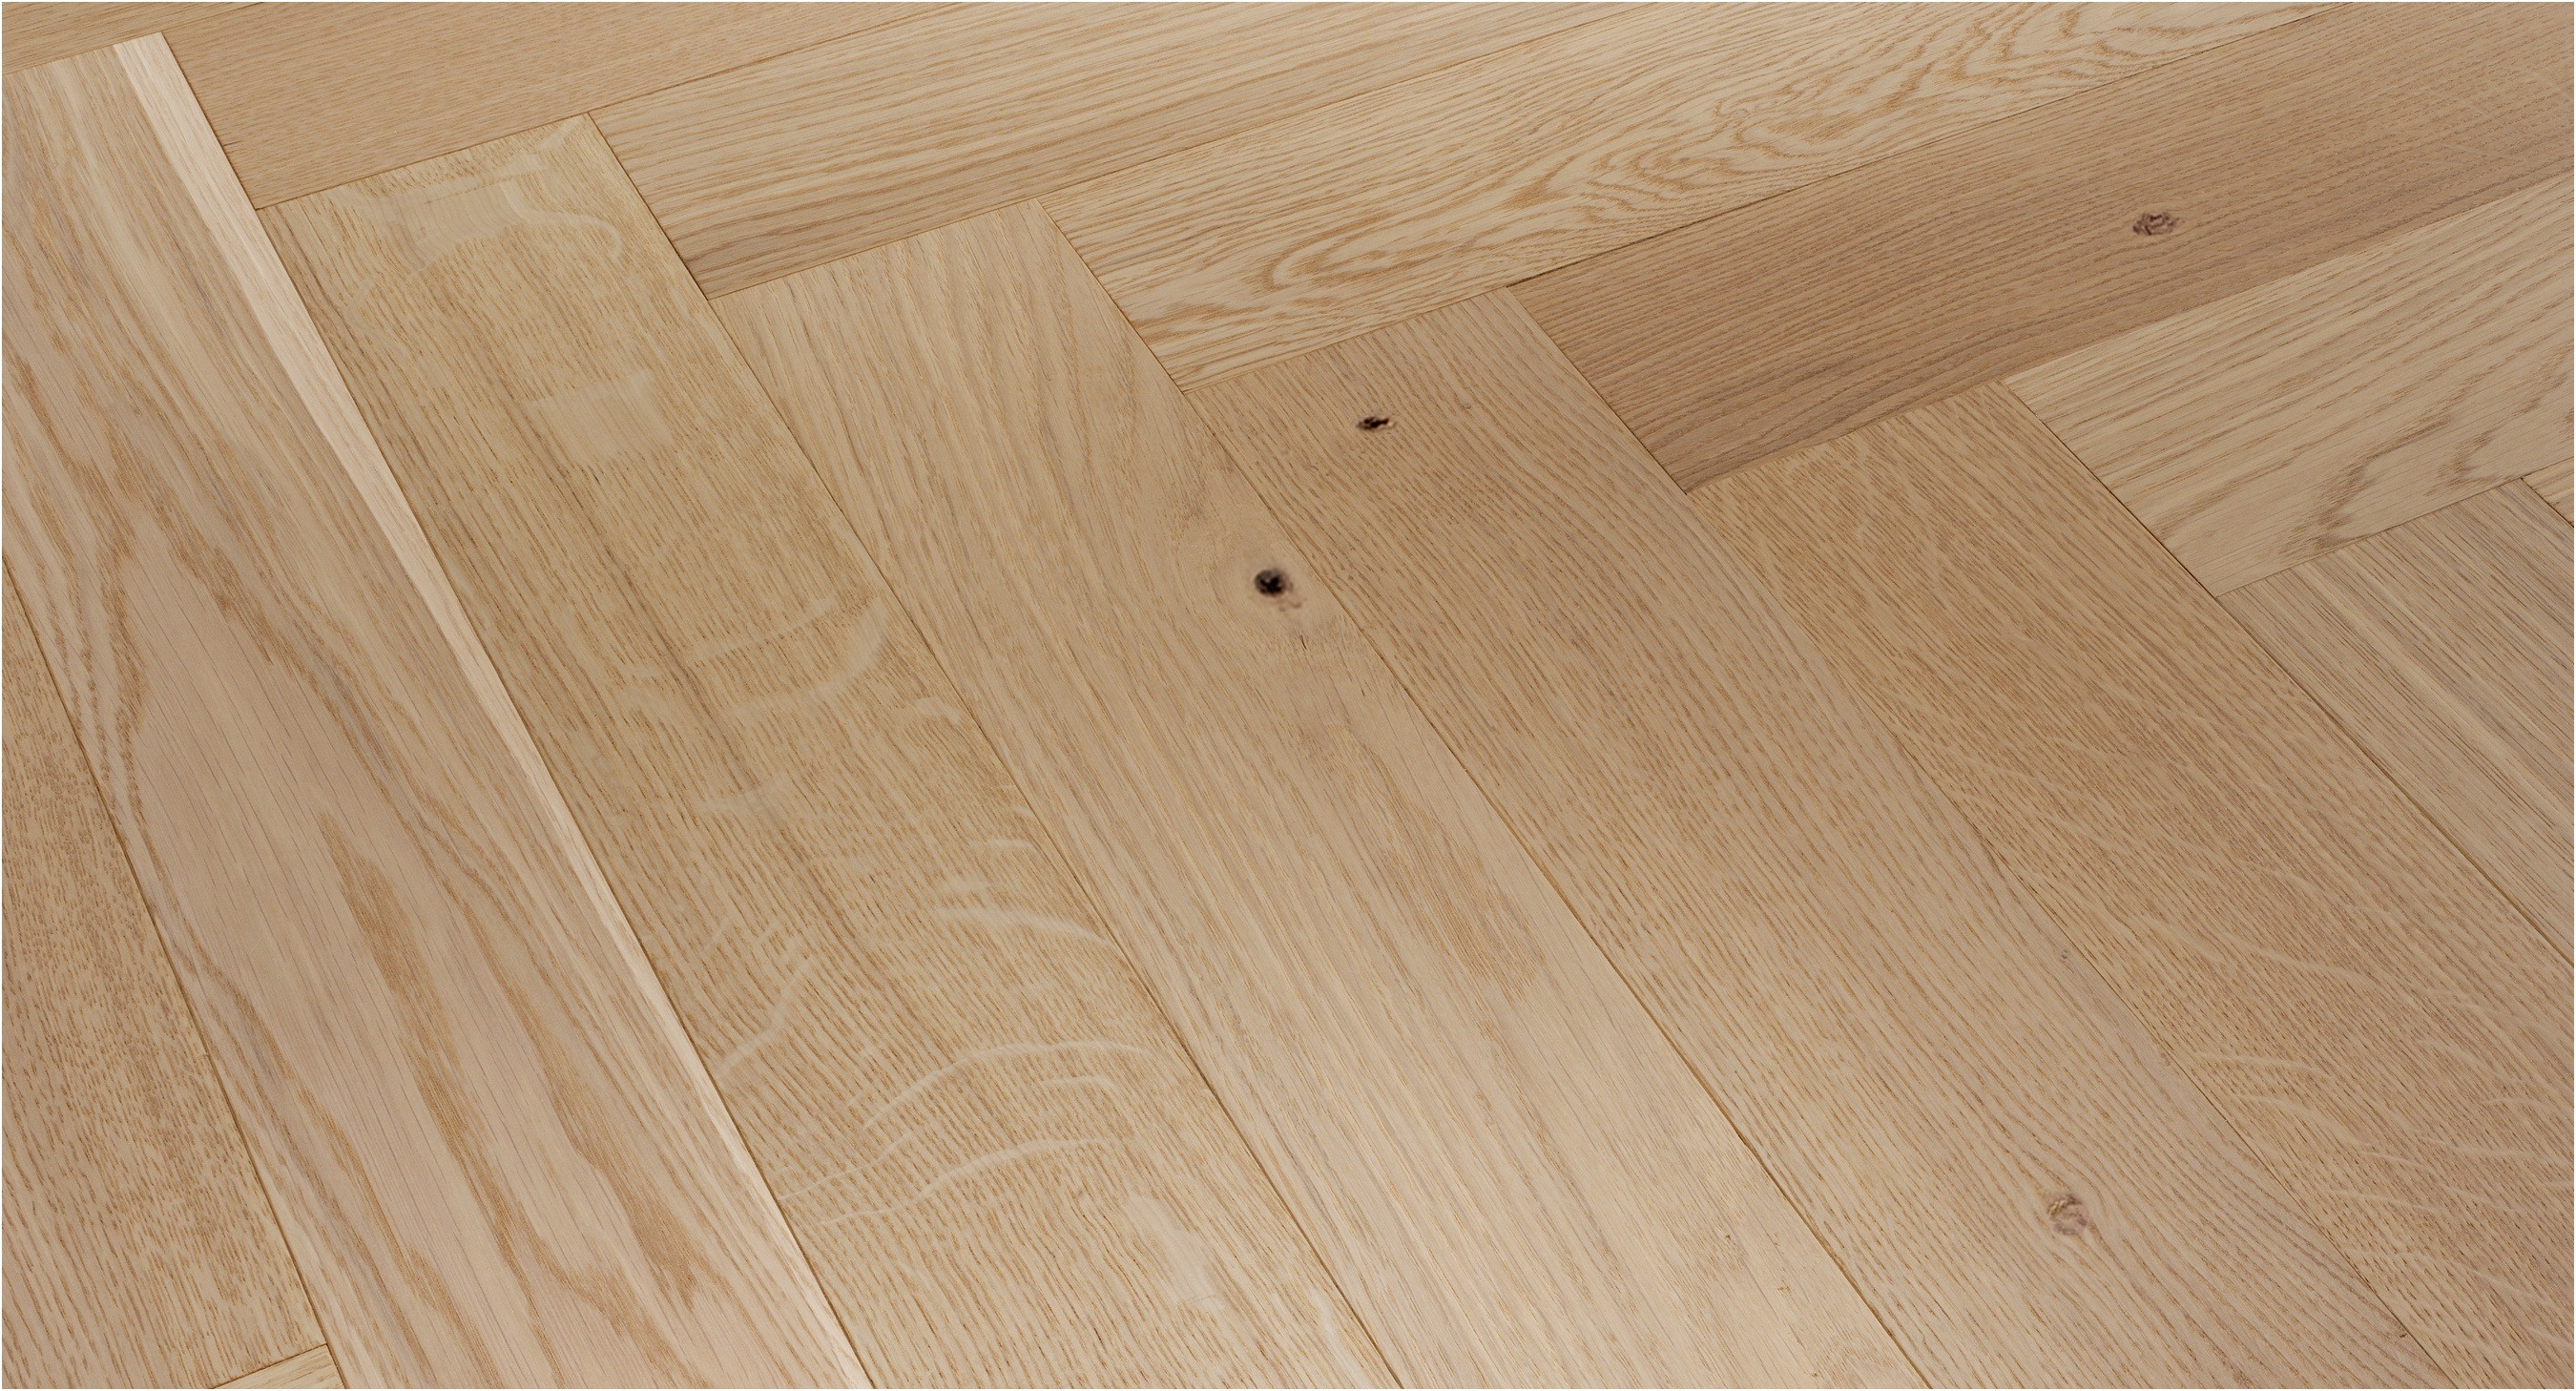 Laminate Flooring Vs Hardwood Flooring Of Laminate Flooring Transition Luxury the Flooring Place Best Place with Regard to Laminate Flooring Transition Luxury the Flooring Place Best Place for Laminate Flooring Stock 0d Grace Pictures